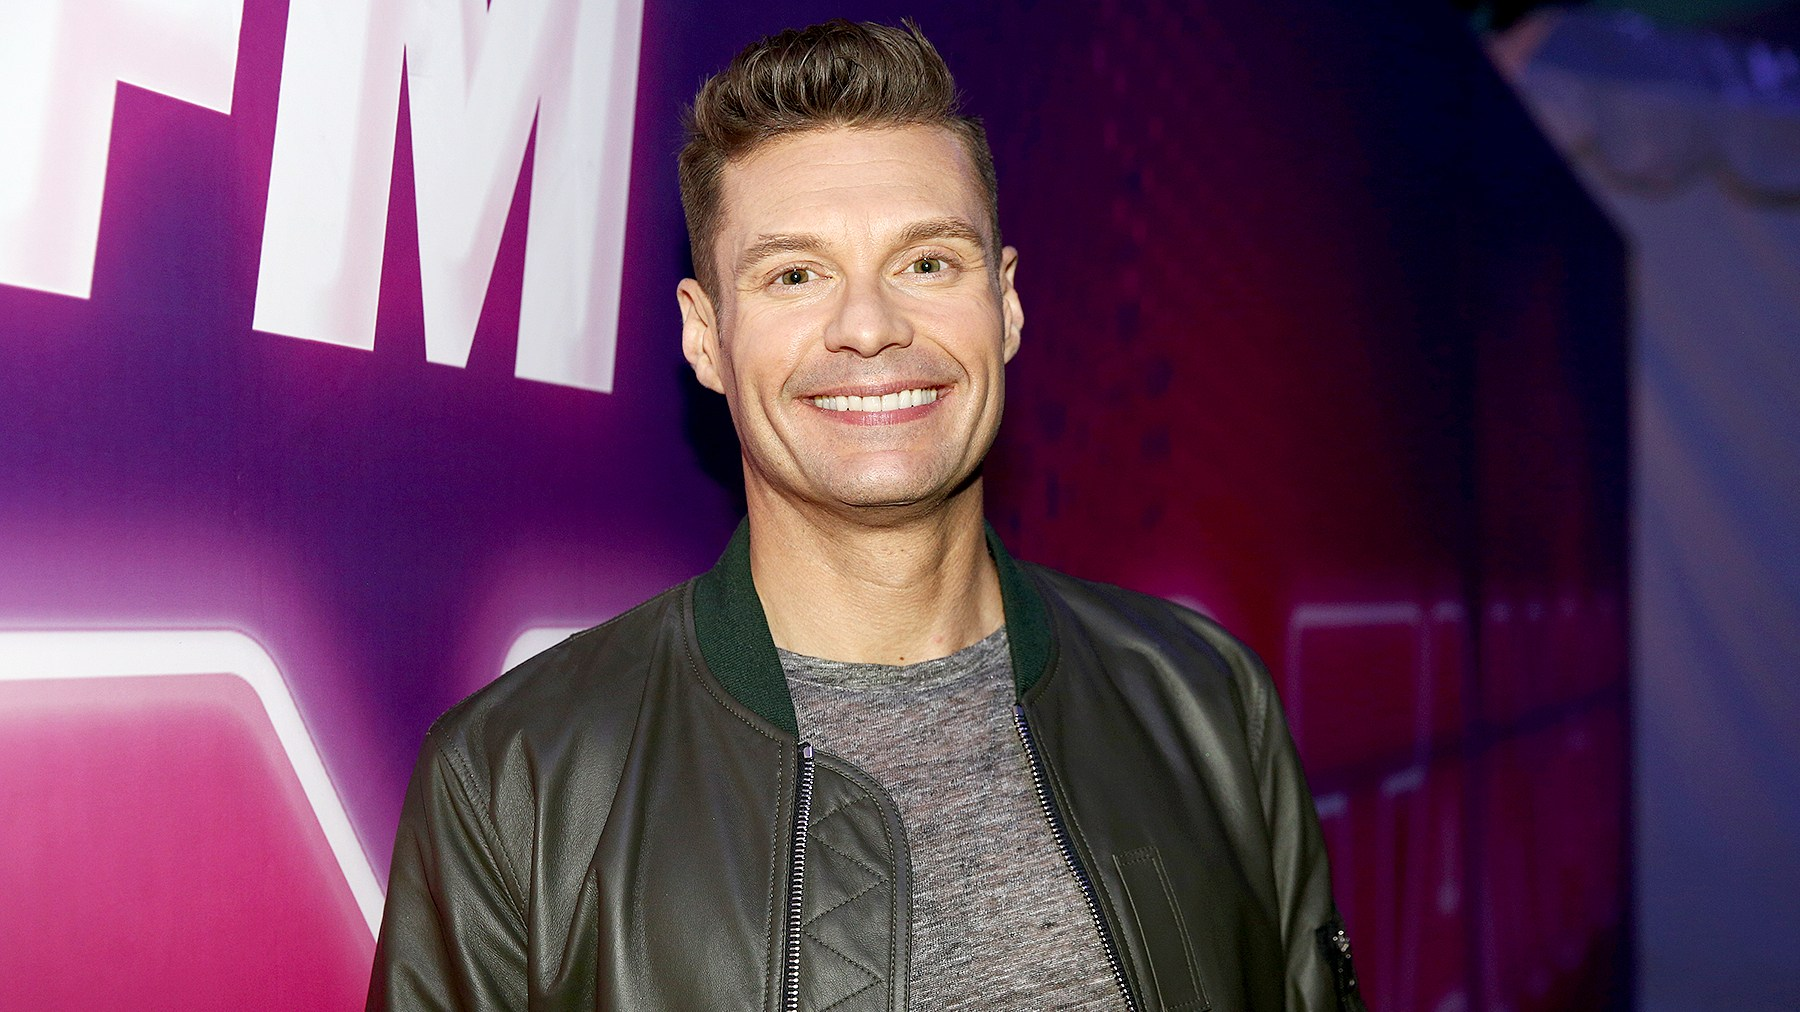 Ryan Seacrest attends 102.7 KIIS FM's 2017 Wango Tango at StubHub Center on May 13, 2017 in Carson, California.